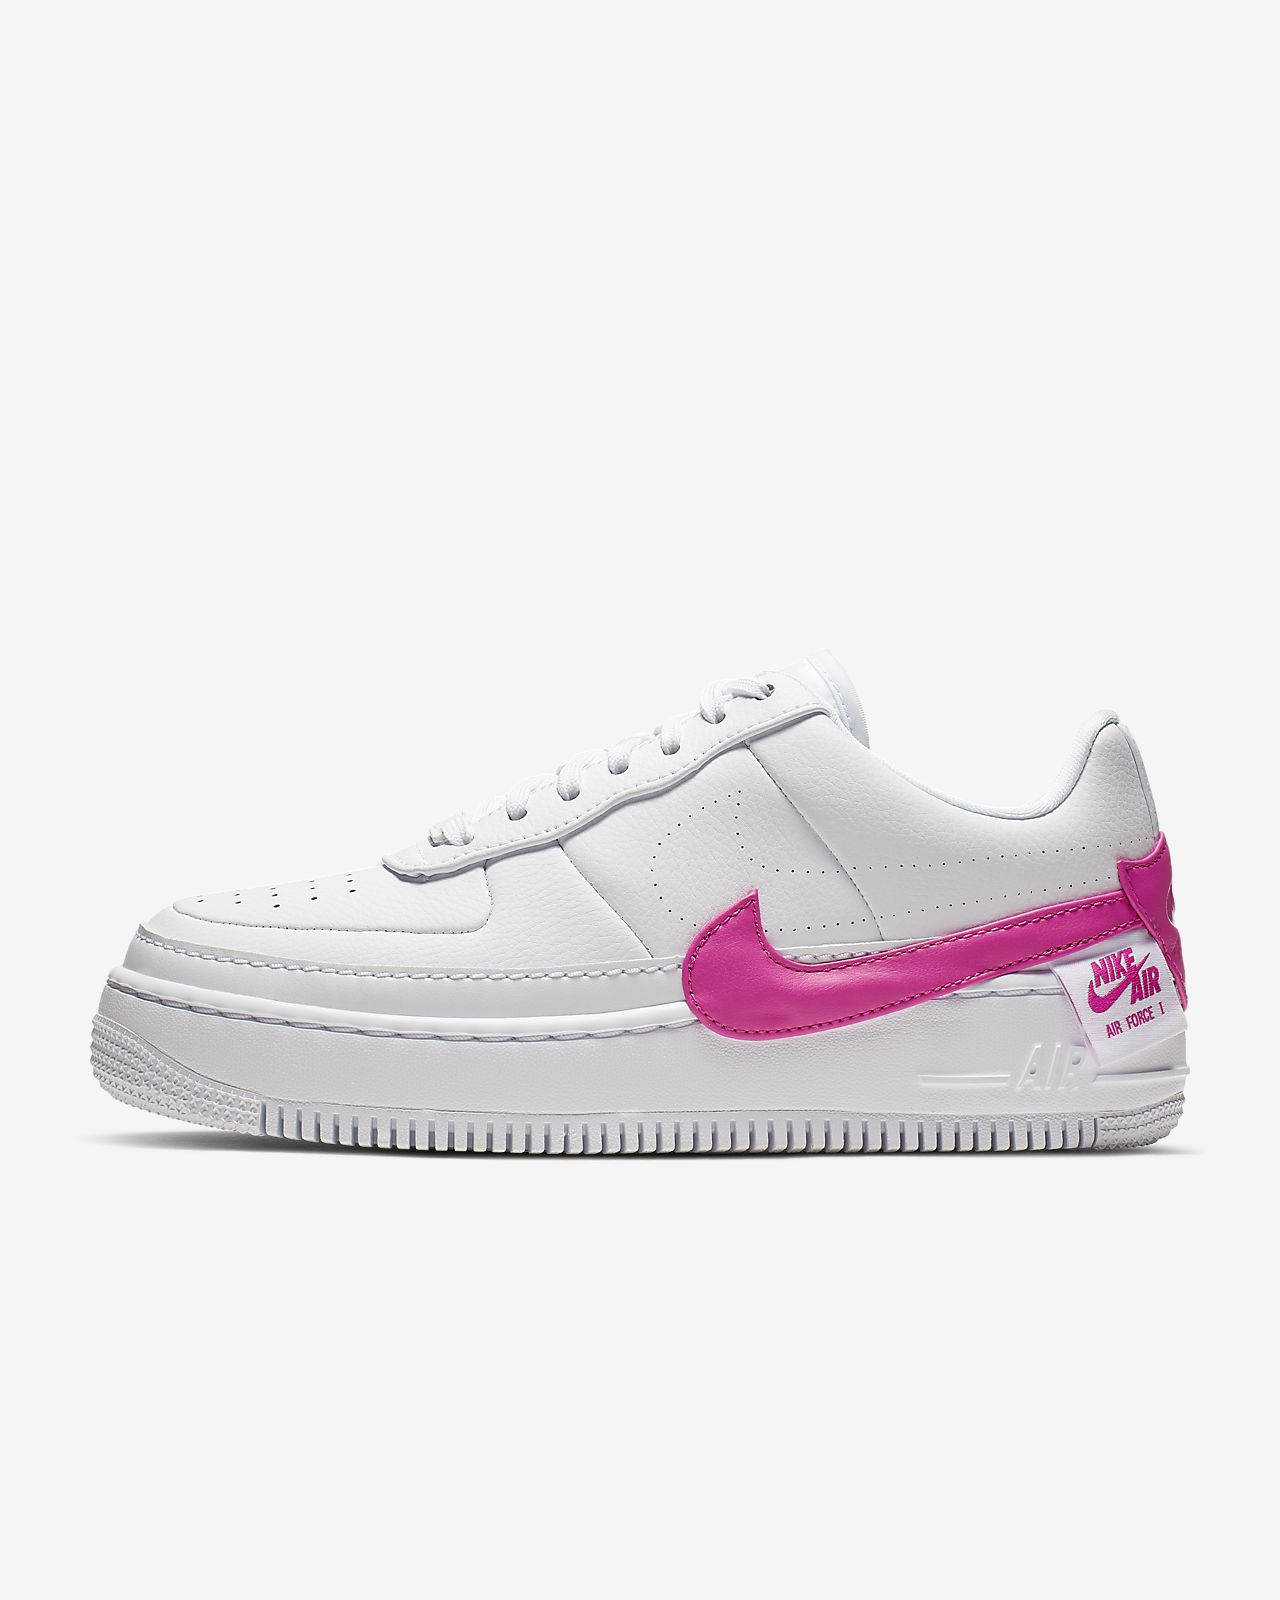 6deb53493c Nike Air Force 1 Jester XX Shoe. Nike.com